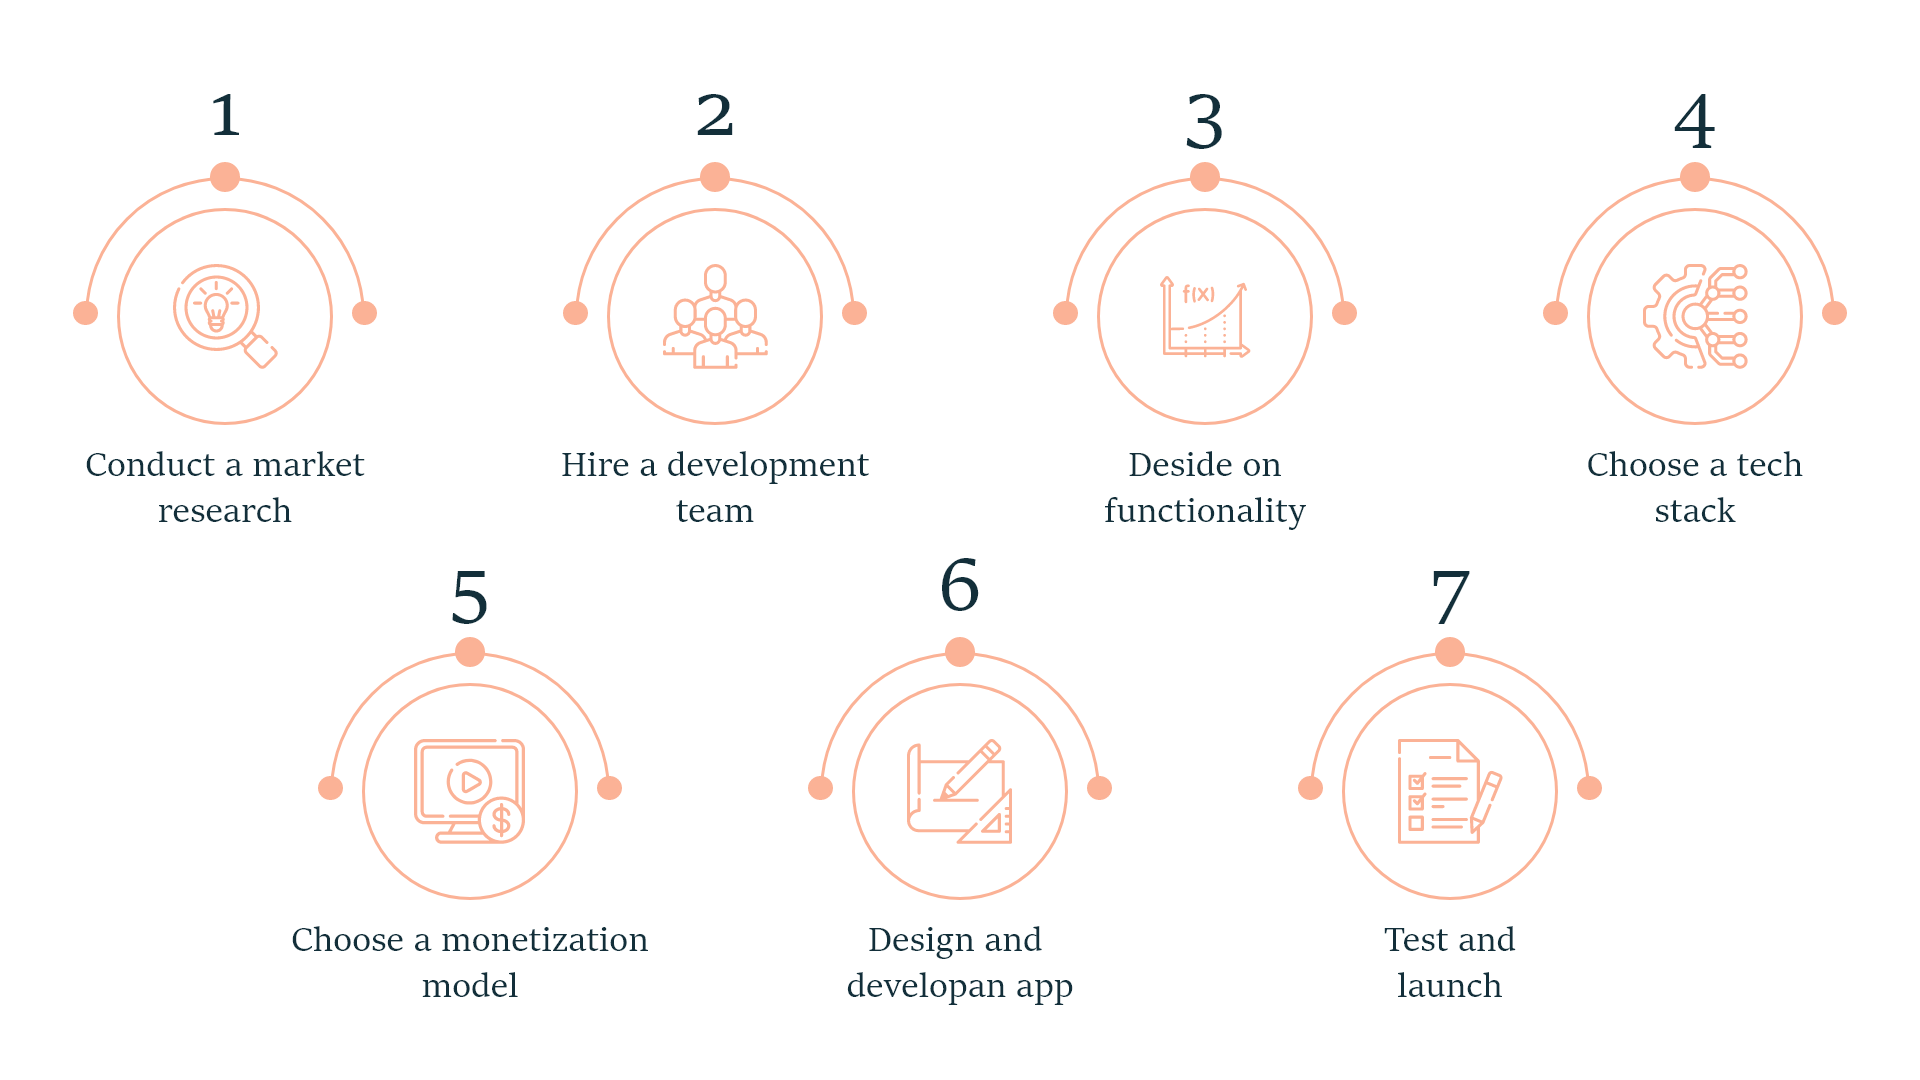 How to Make a Cloud-Based Application: Step-by-Step